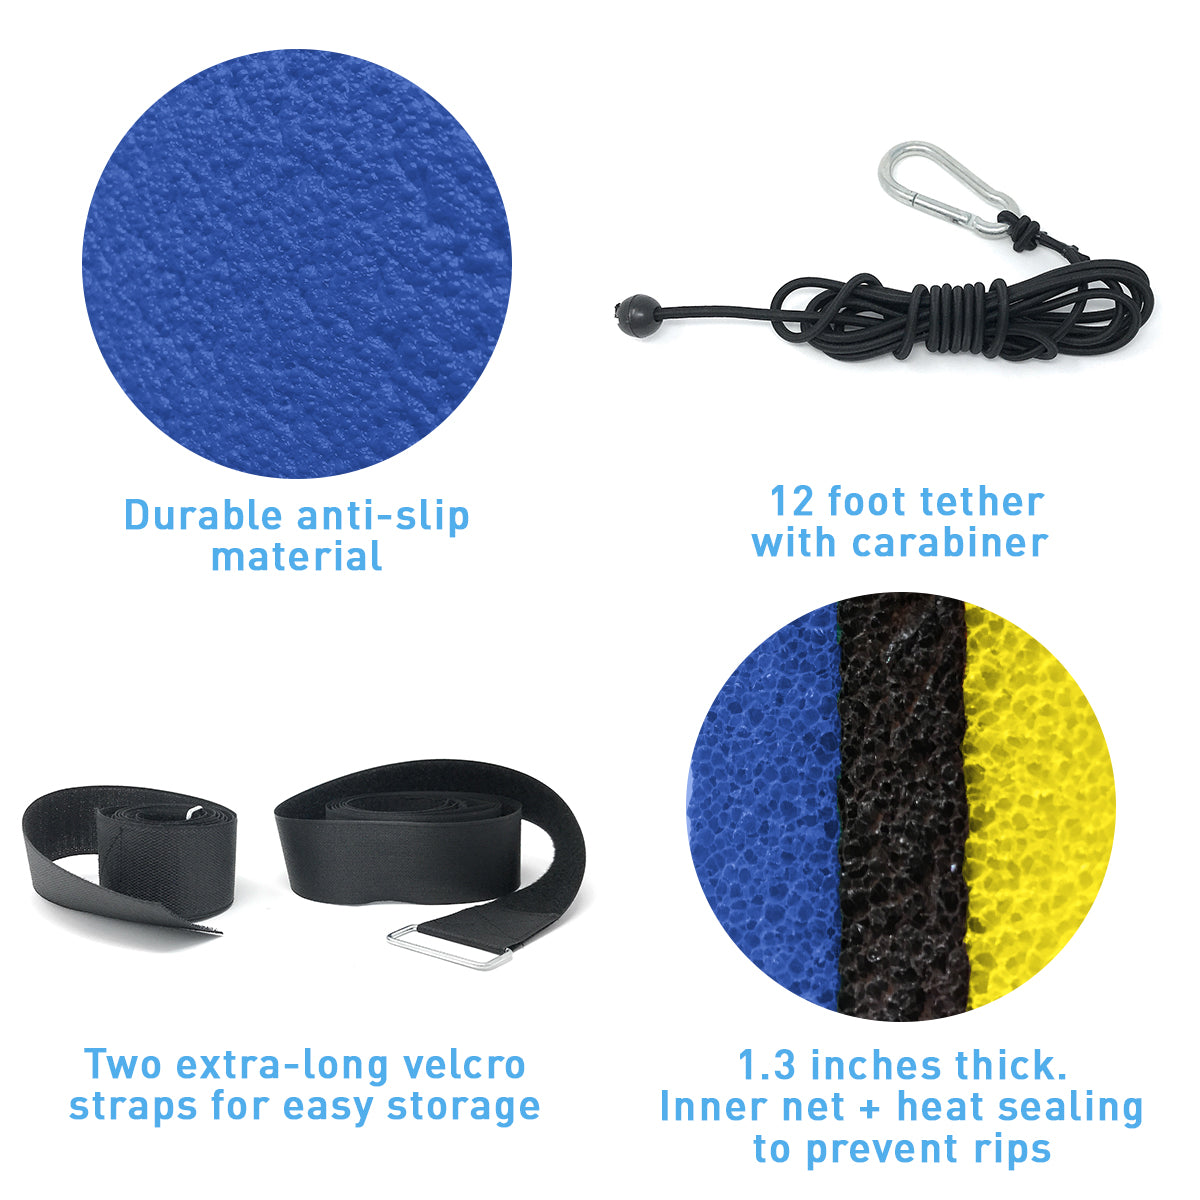 Floating Island For Lakes or Pools - 18 X 6 FEET (BLUE/BLACK /YELLOW)